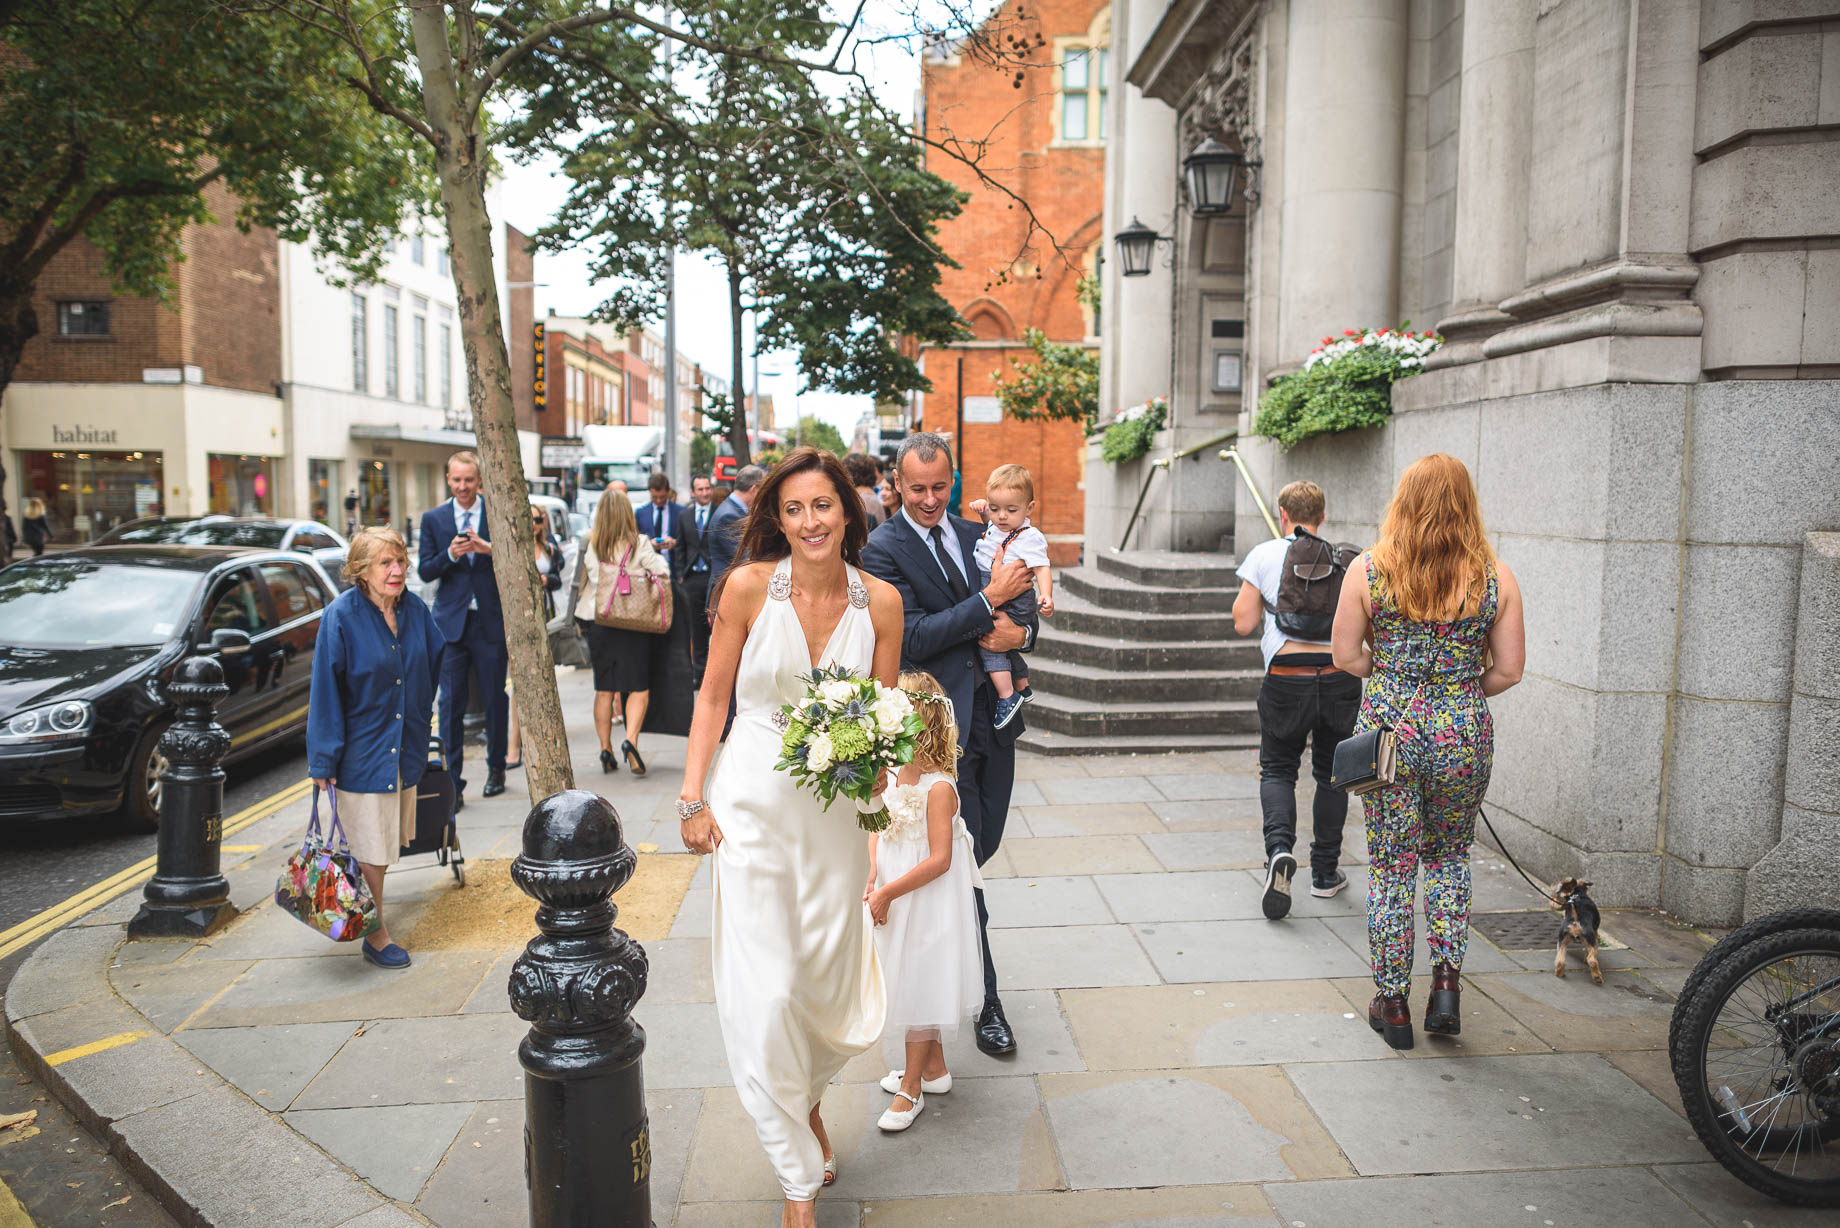 Chelsea and Mayfair wedding photography - Guy Collier - Vicki and Damien (75 of 126)